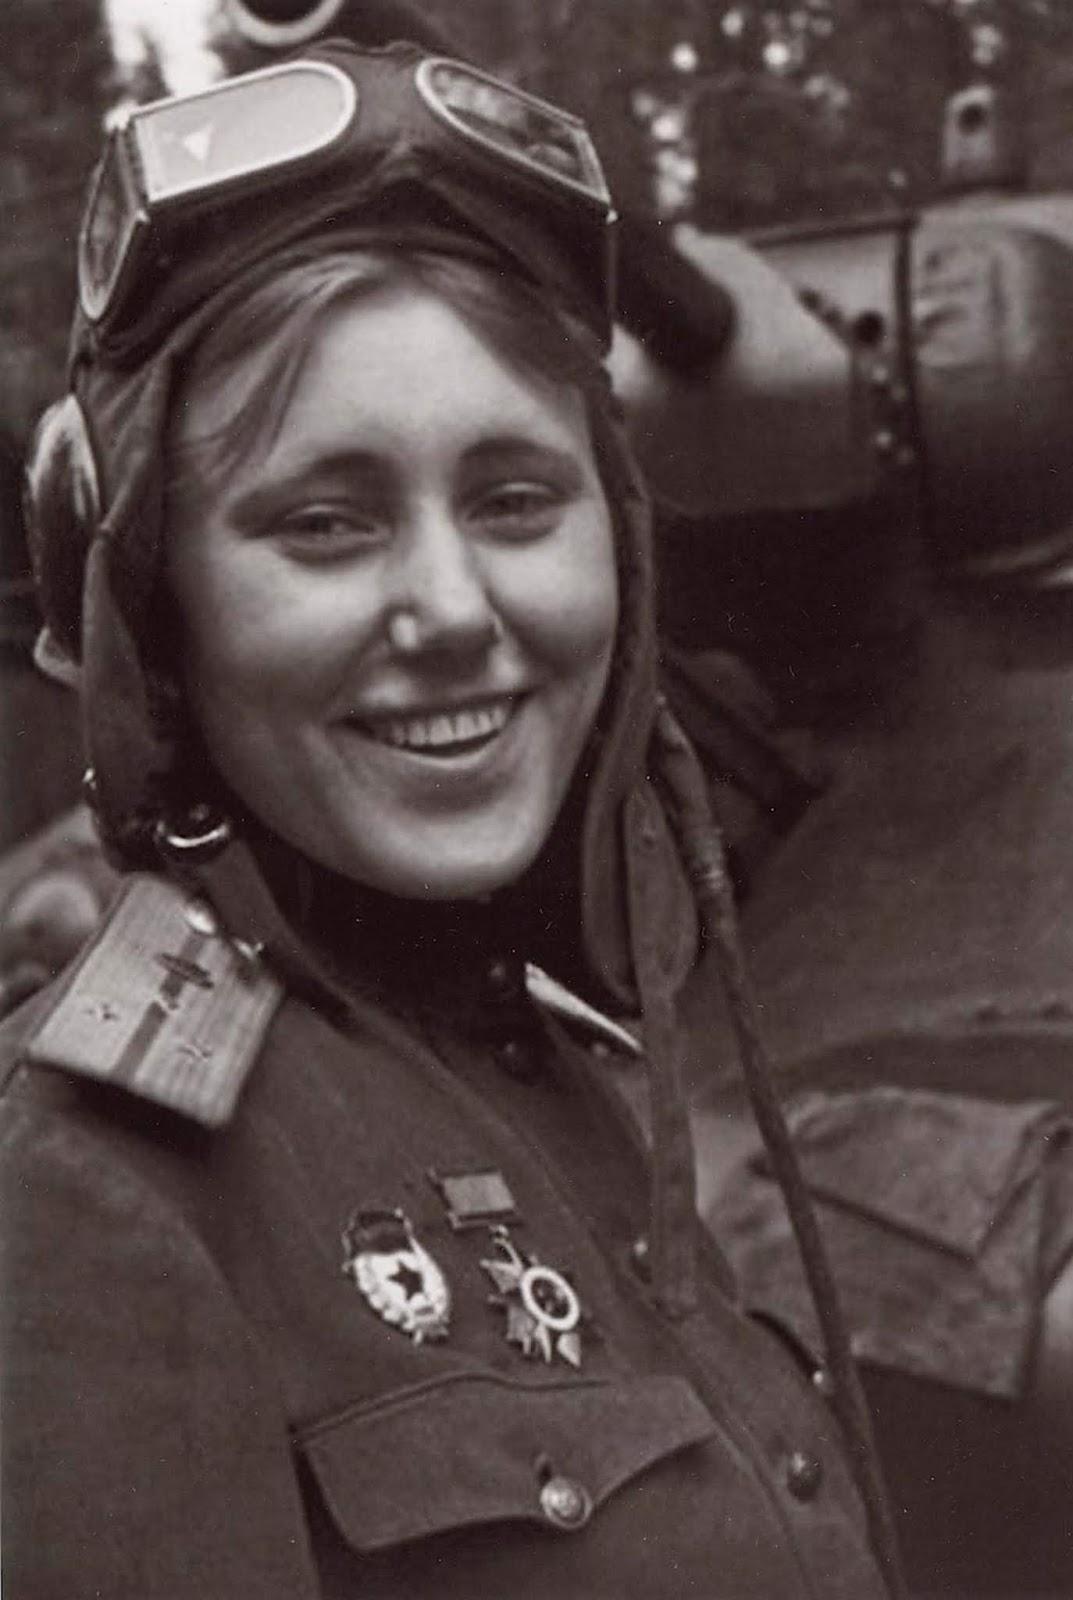 Aleksandra Grigoryevna Samusenko was a Soviet commander of a T-34 tank and a liaison officer during World War II. She was the only female tankman (tankwoman?!) in the 1st Guards Tank Army. She is here because she had the prettiest smile in the 1st Guards Tank Army. You can read more about her on this article.